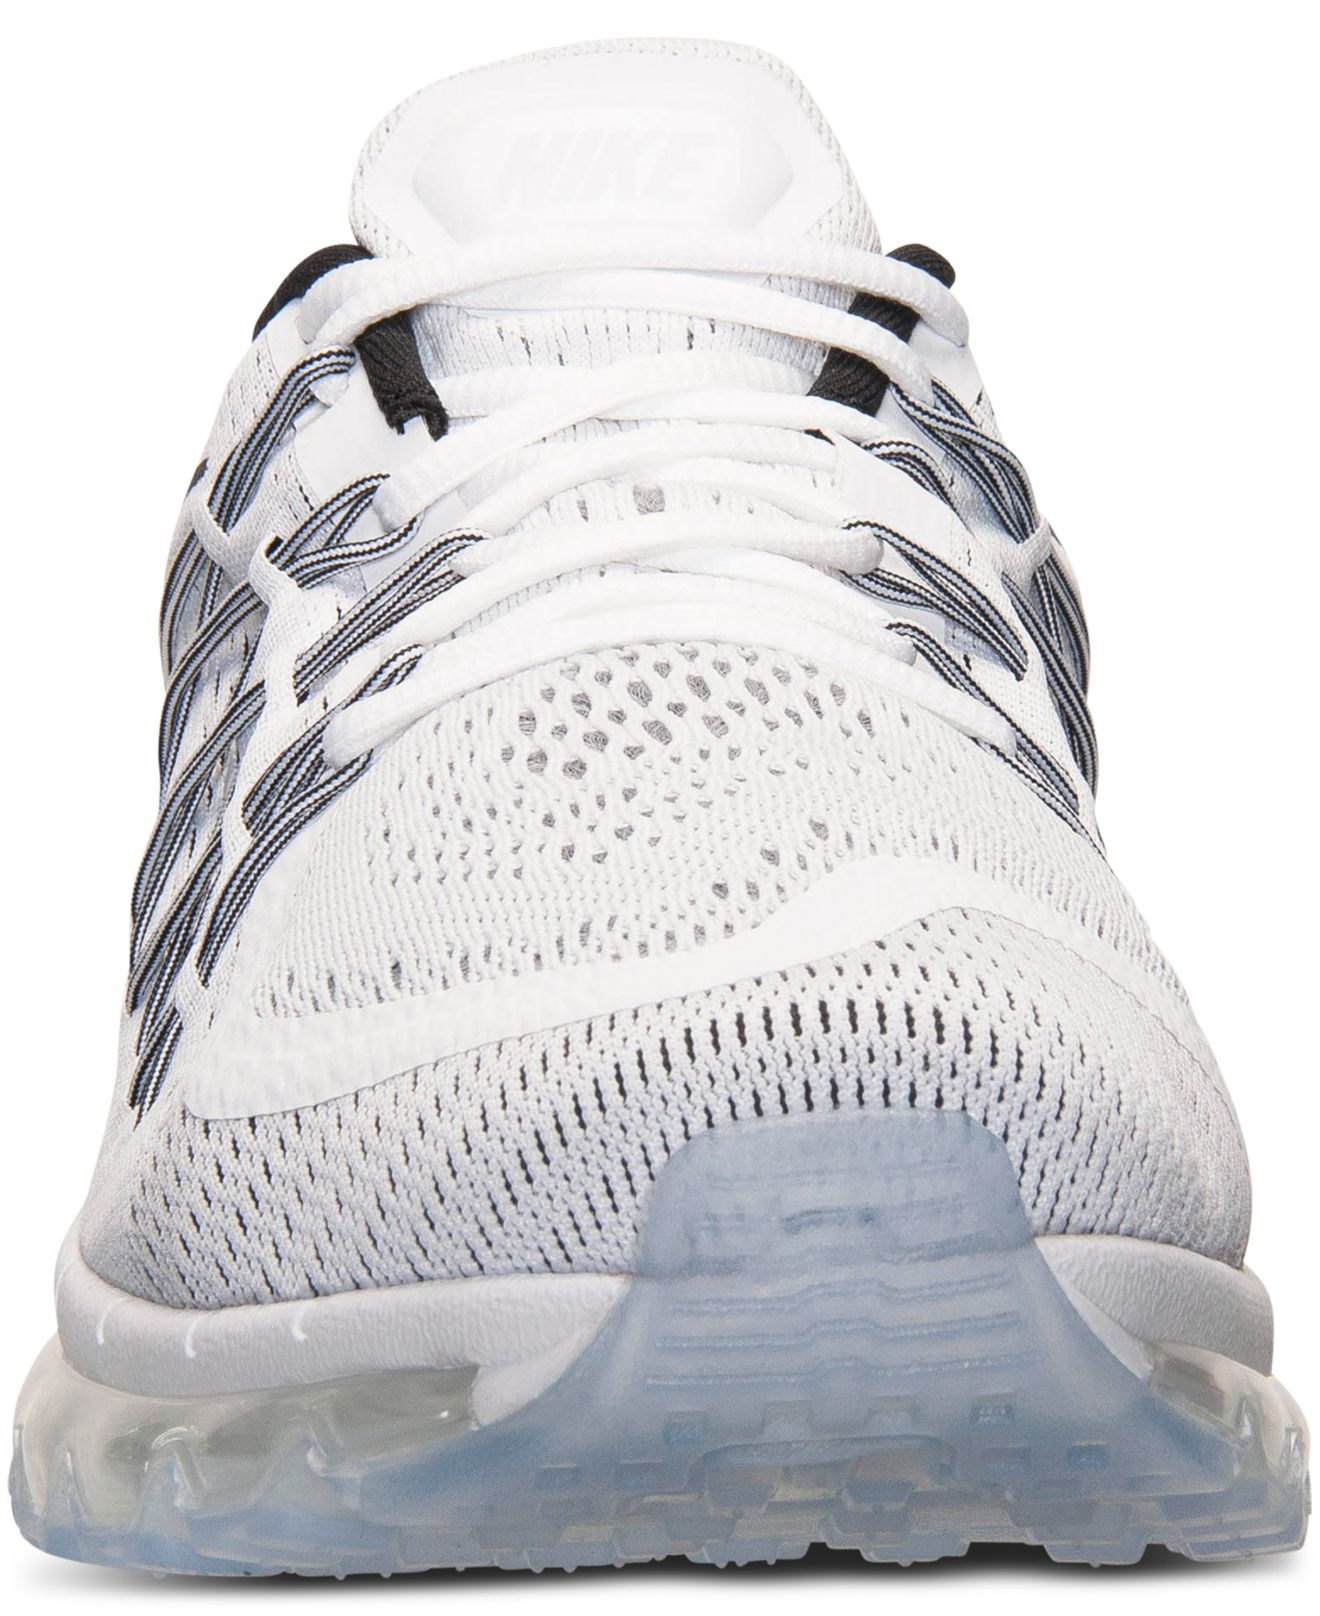 03ff54c71c3475 ... wholesale lyst nike mens air max 2015 running sneakers from finish line  in 83cc5 dbb1d germany nike womens ...